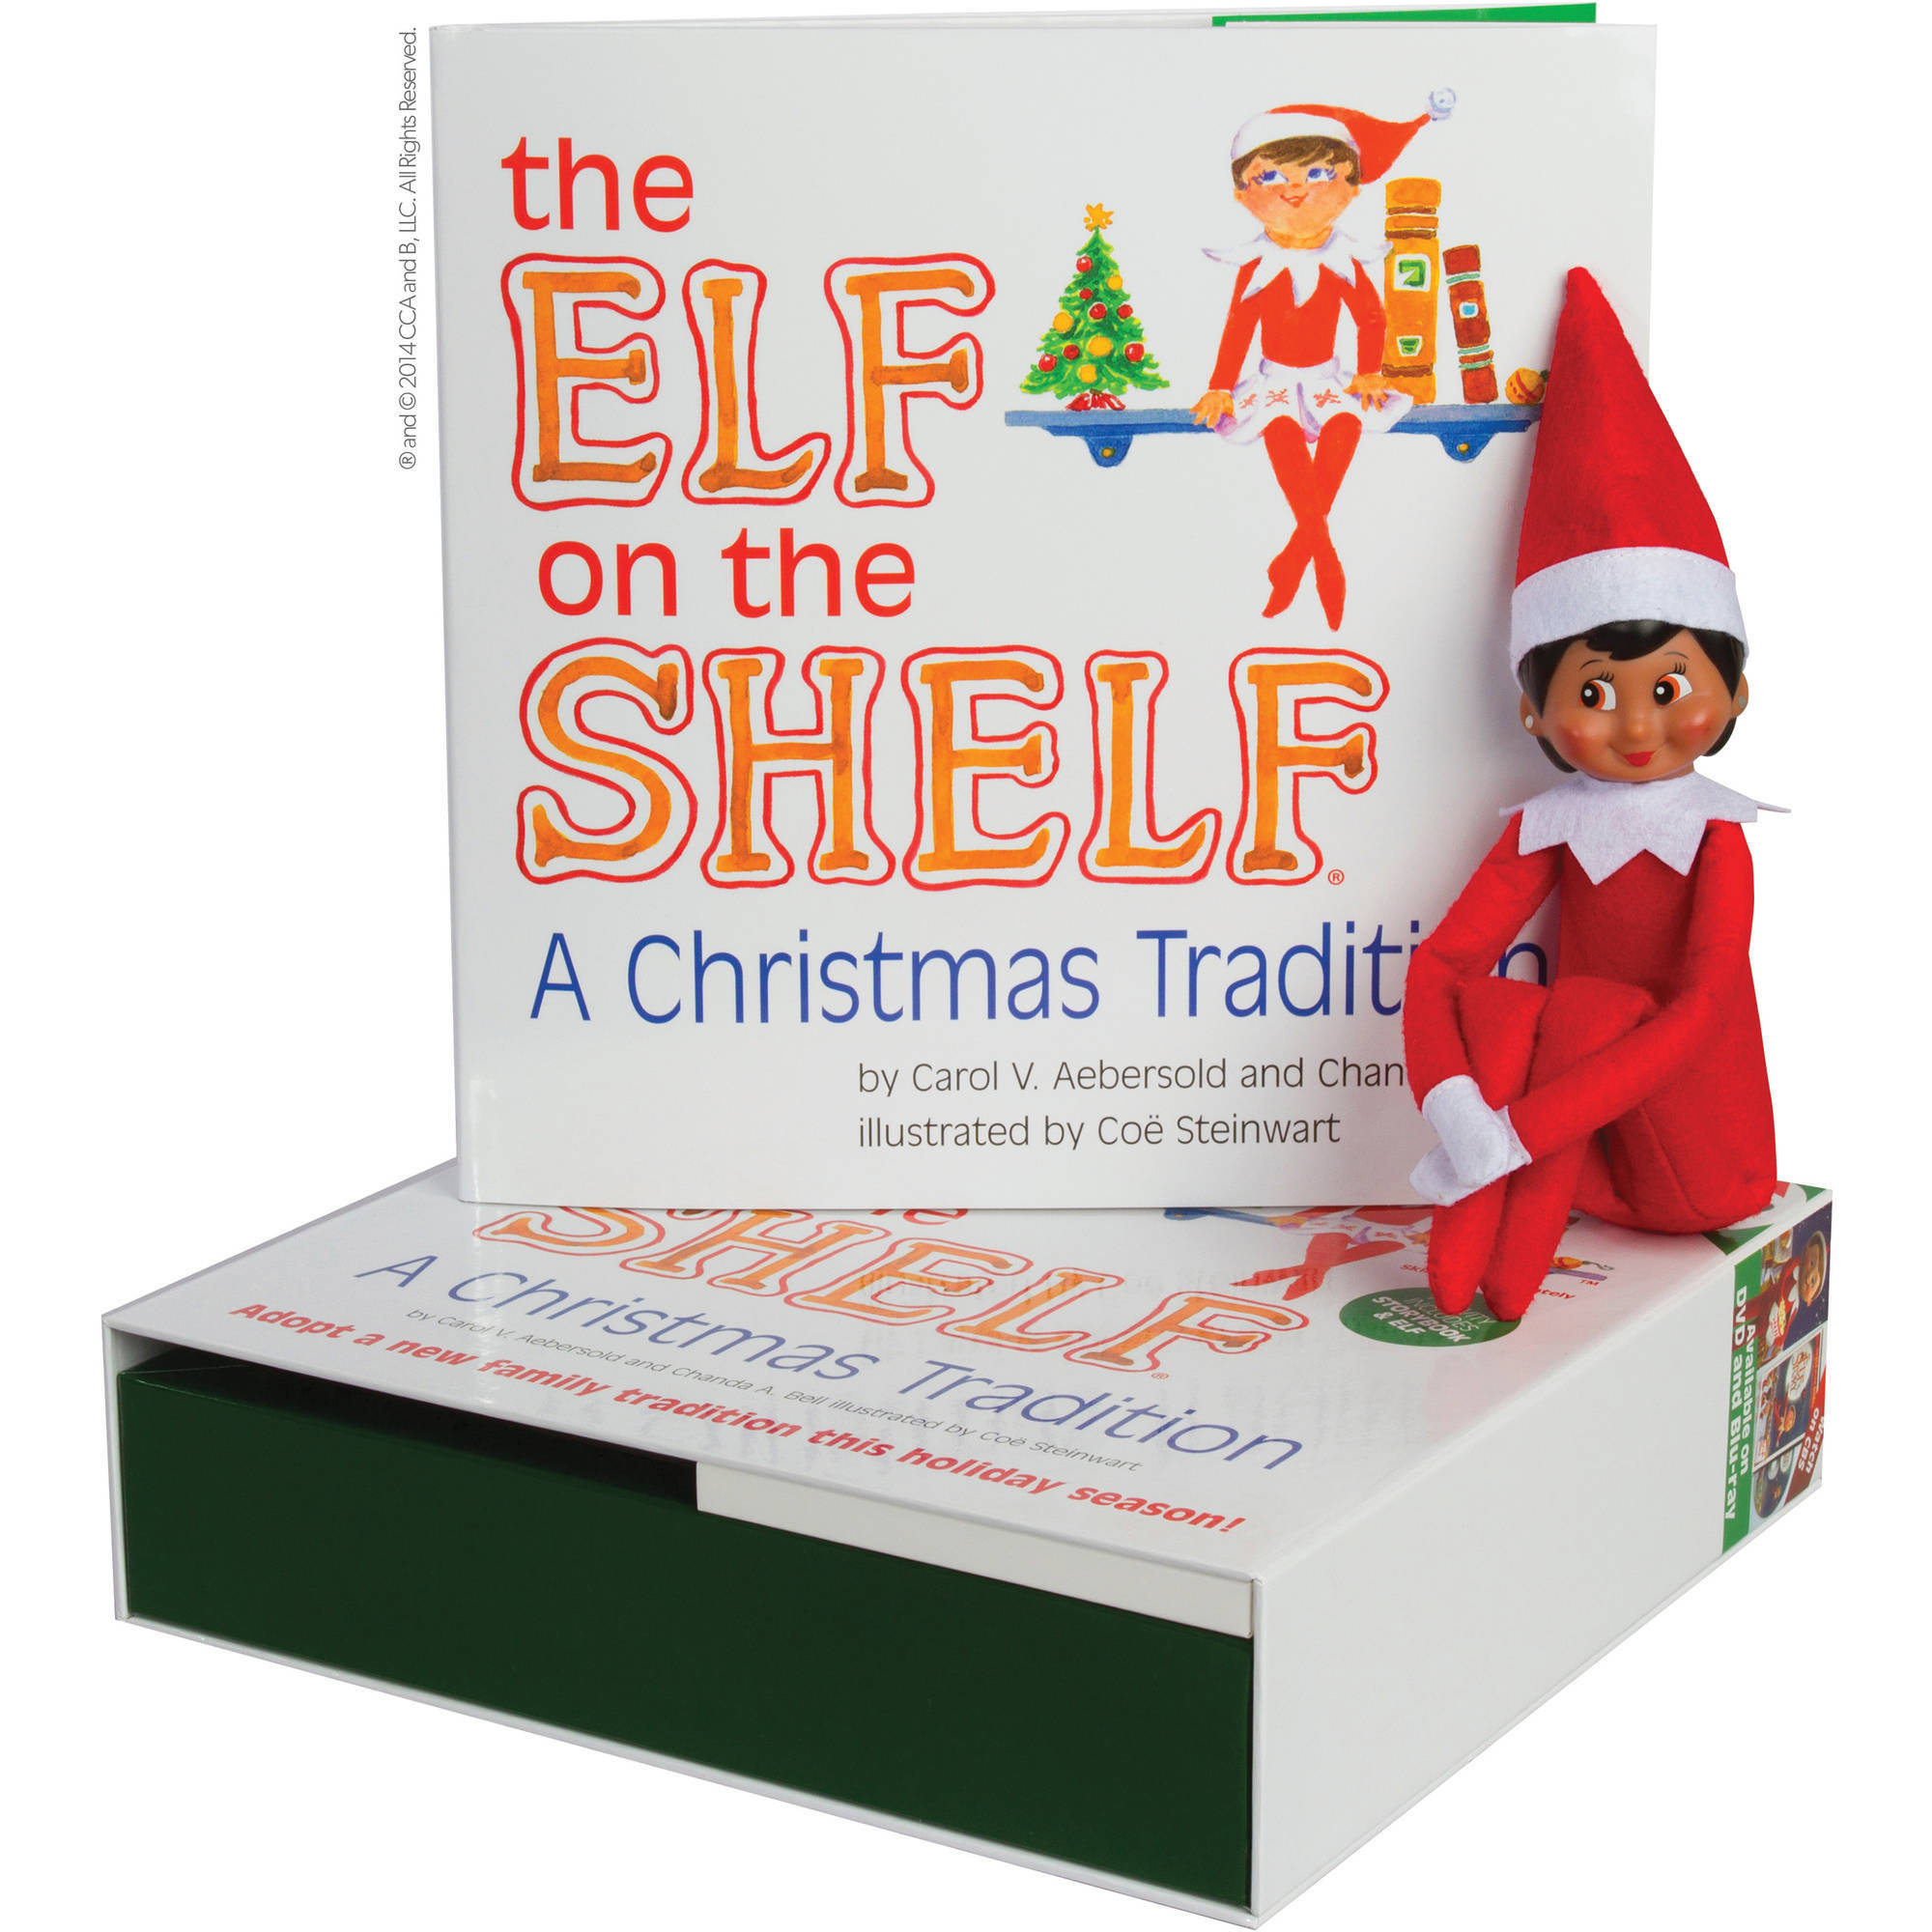 elf on the shelf girl light walmartcom - Elf On The Shelf Christmas Tradition